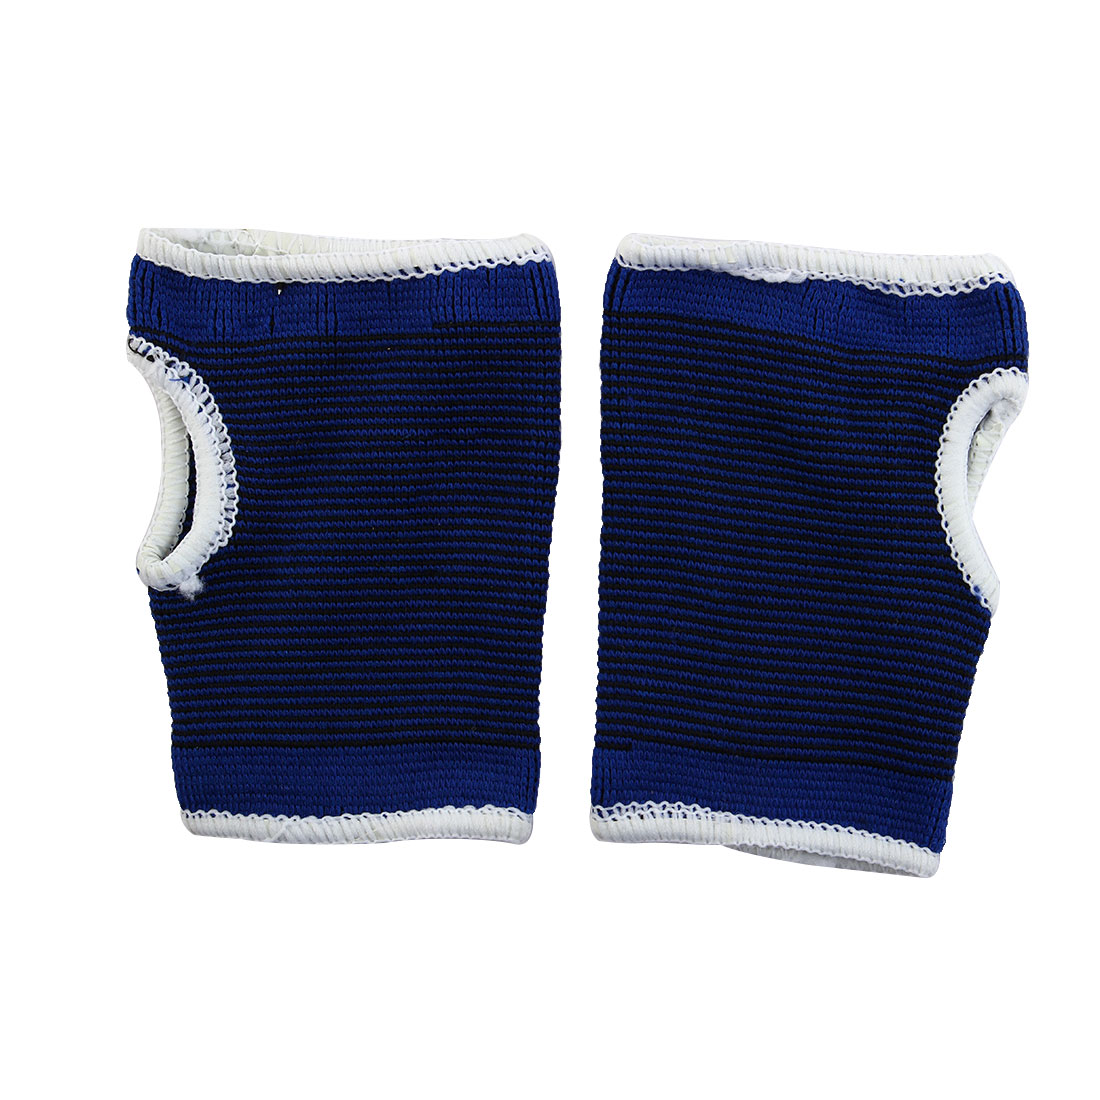 Sports Black Pinstriped Print Palm Support Protectors Blue 2 Pcs